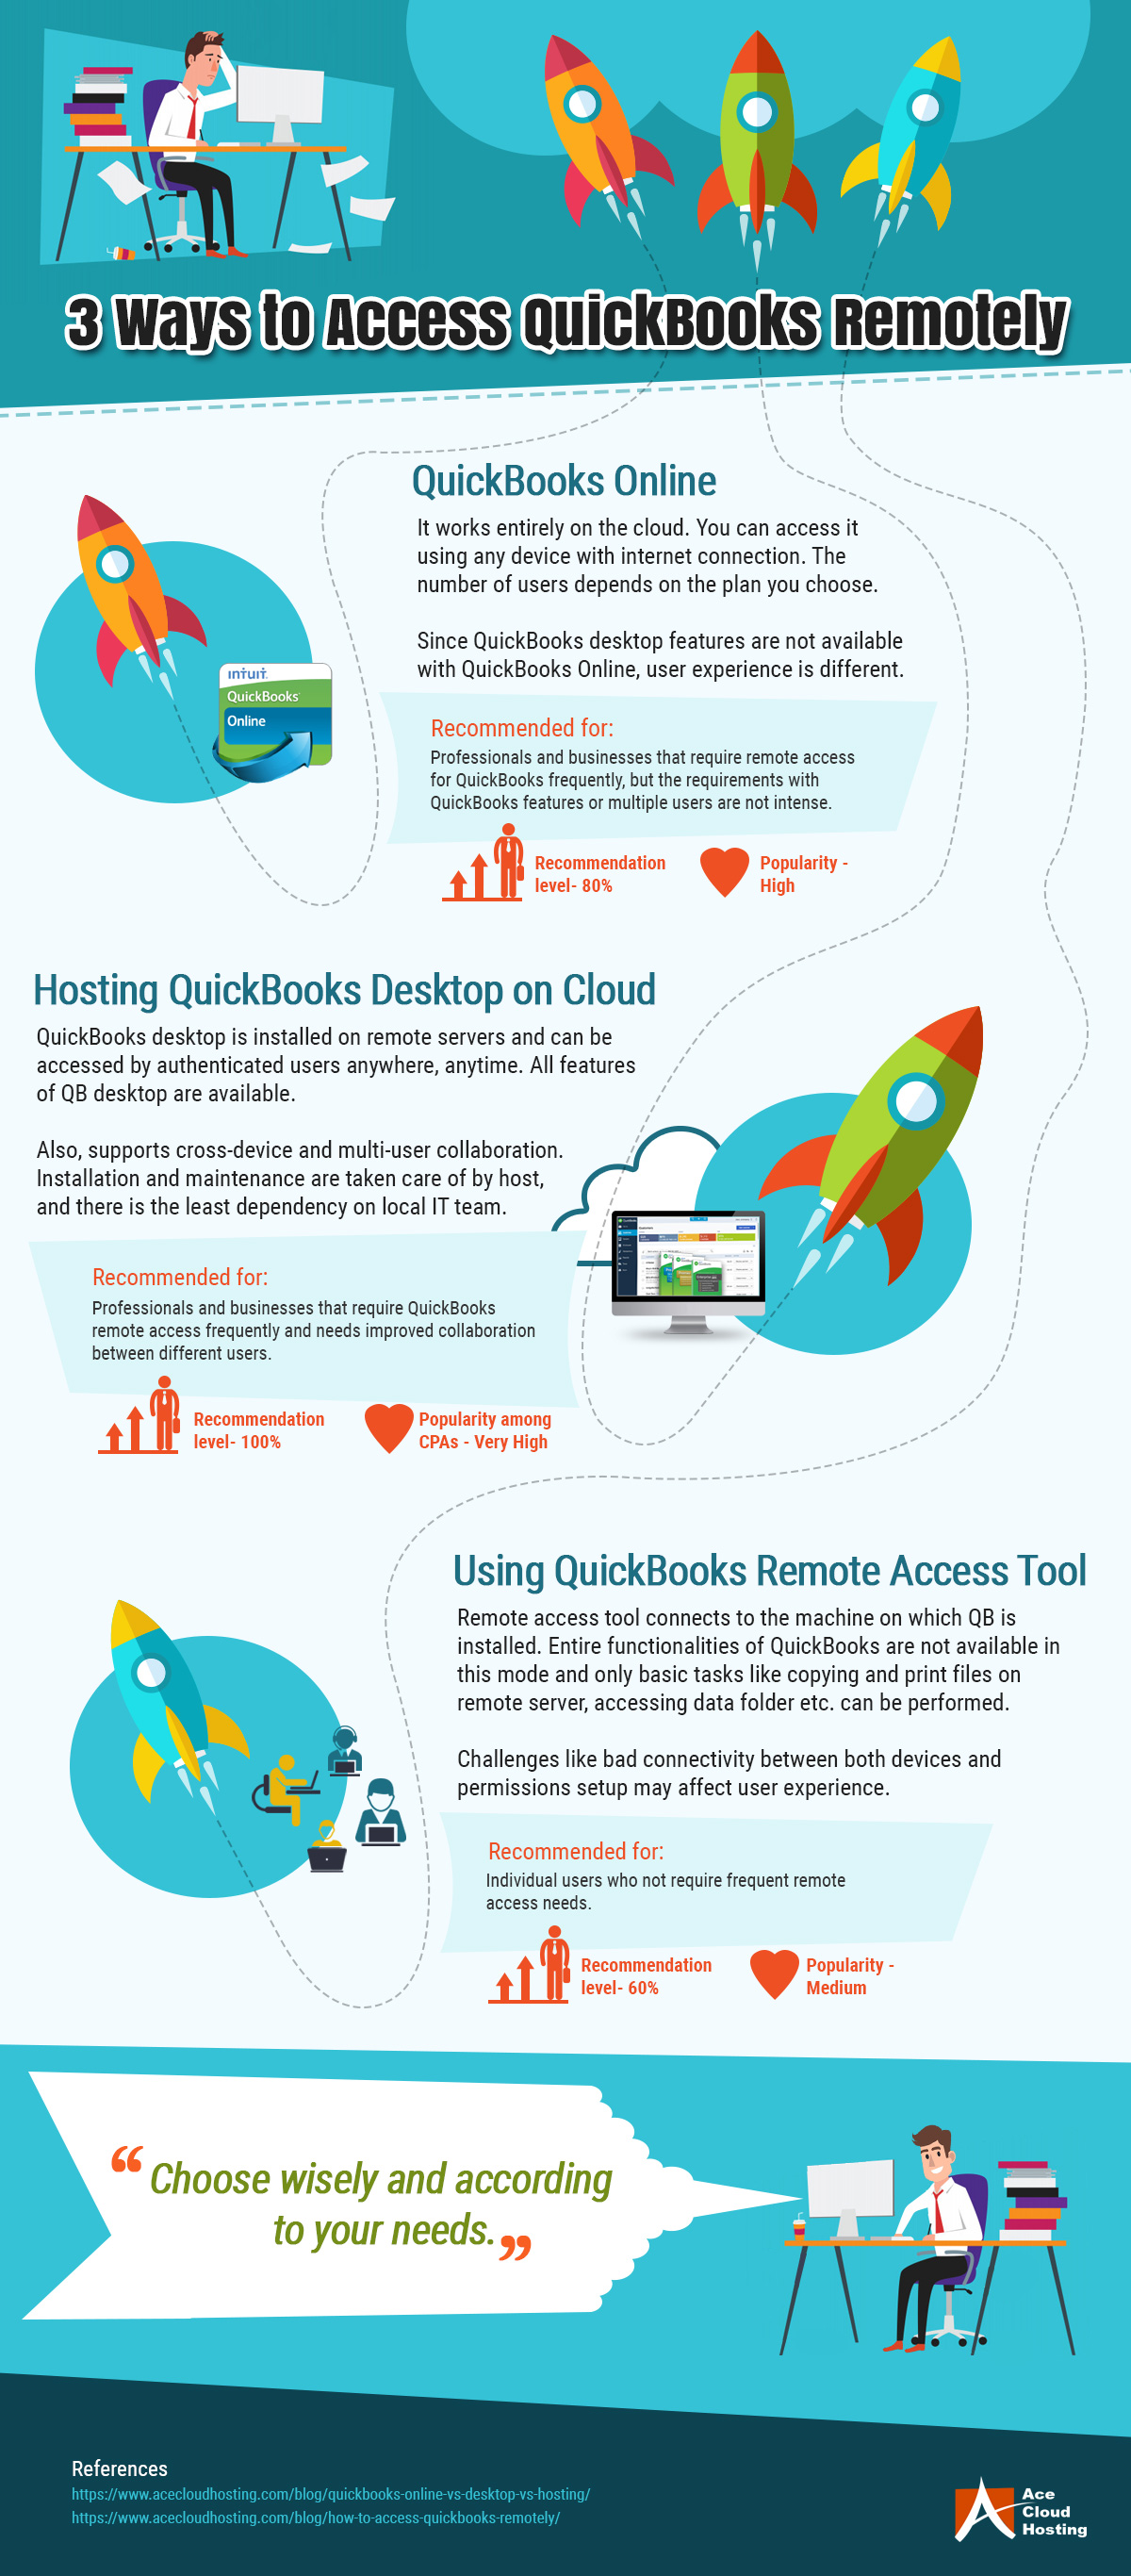 quickbooks-remote-access-infographic